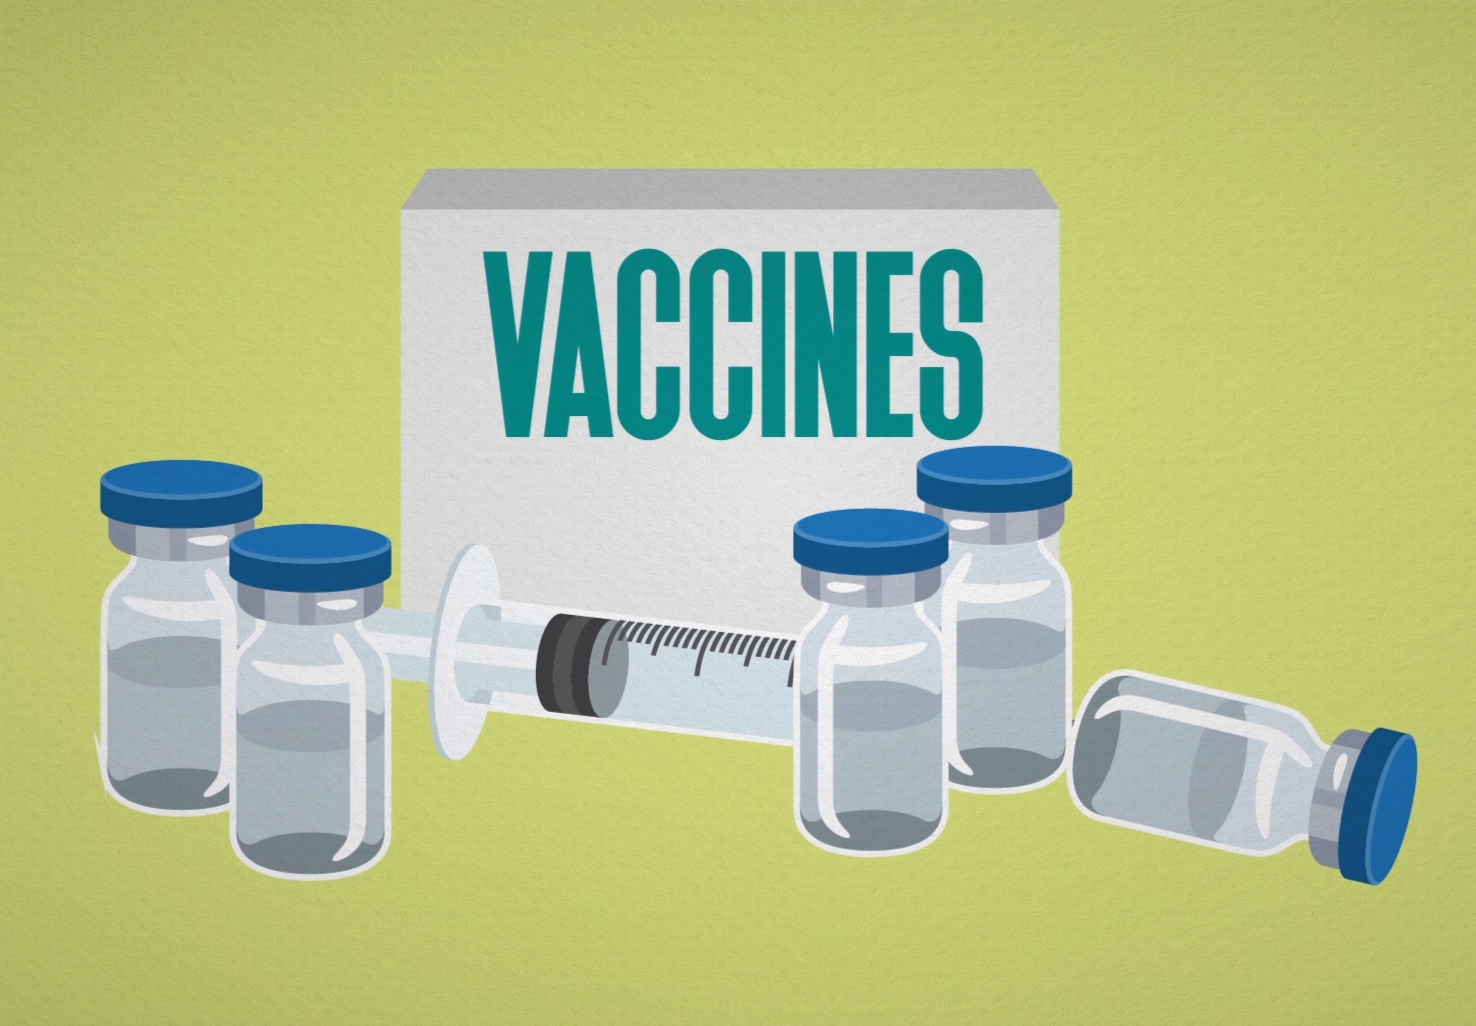 Photo courtesy of https://www.agingresearch.org/press-release/new-campaign-offers-ae%CB%9Cwellness-wisdom-about-vaccines-for-medicare-open-enrollment/.